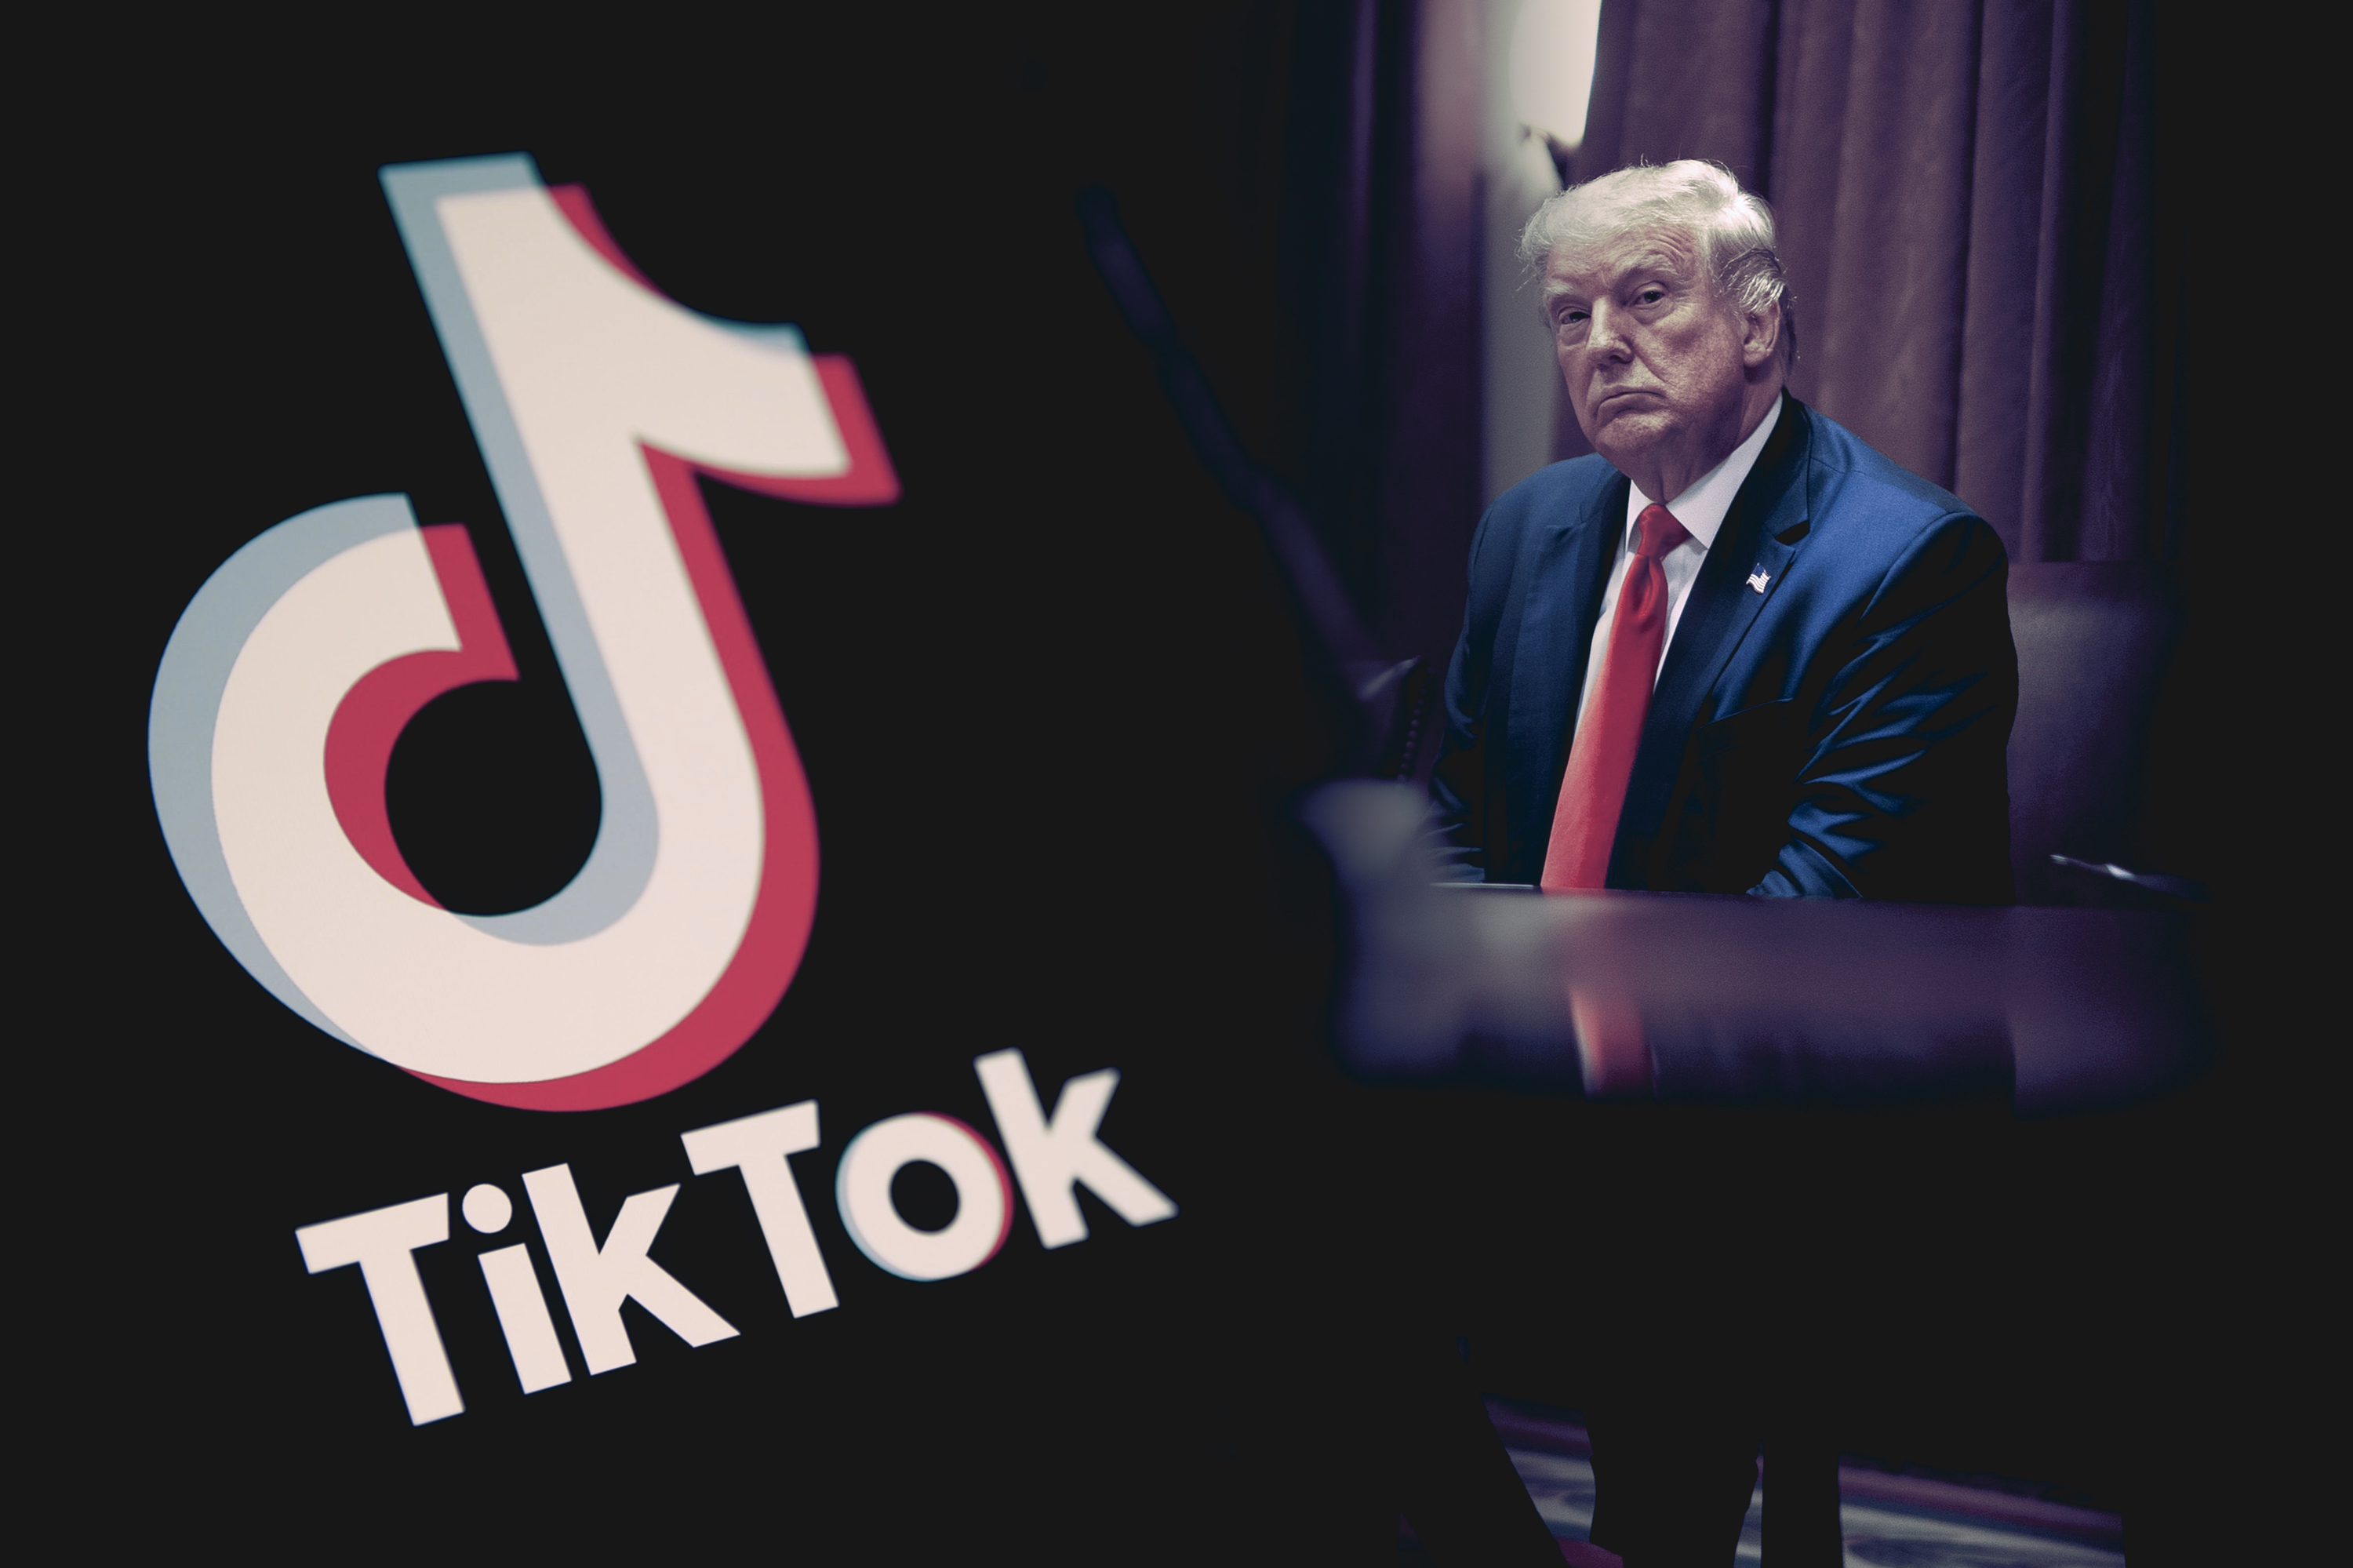 Trump's TikTok ban blocked by federal judge